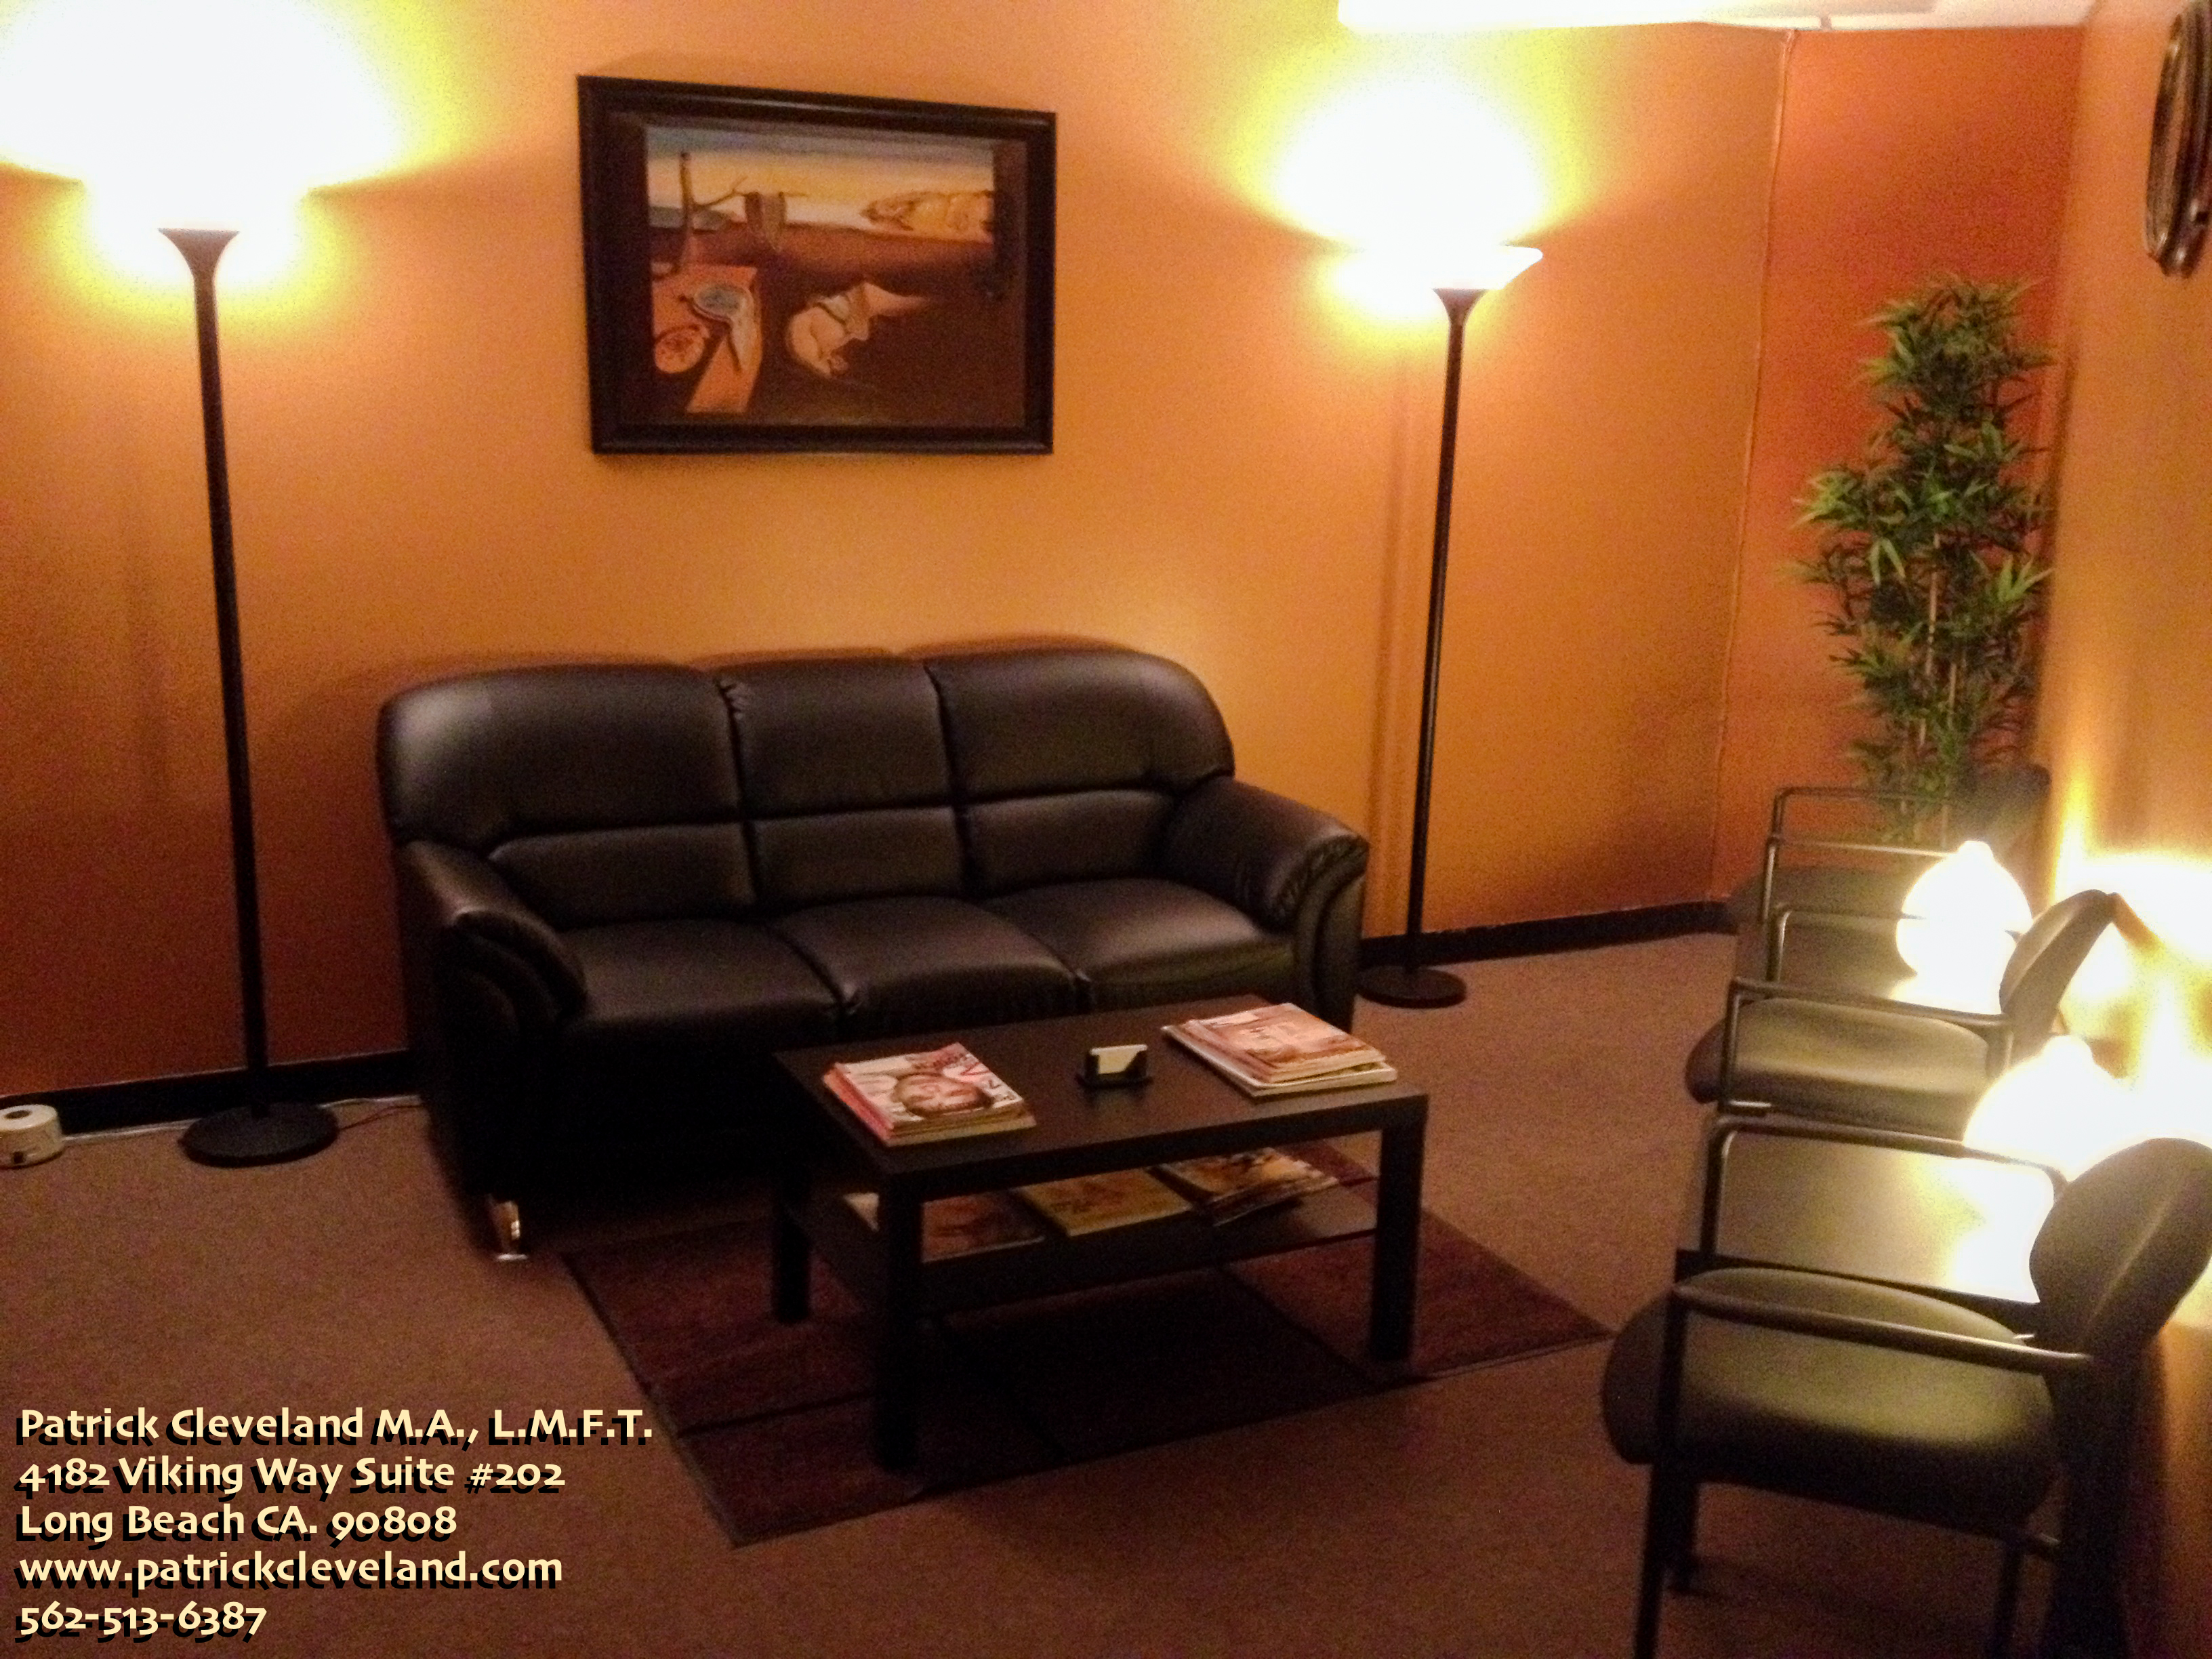 Daybreak Counseling Center Suite #202 Waiting Room